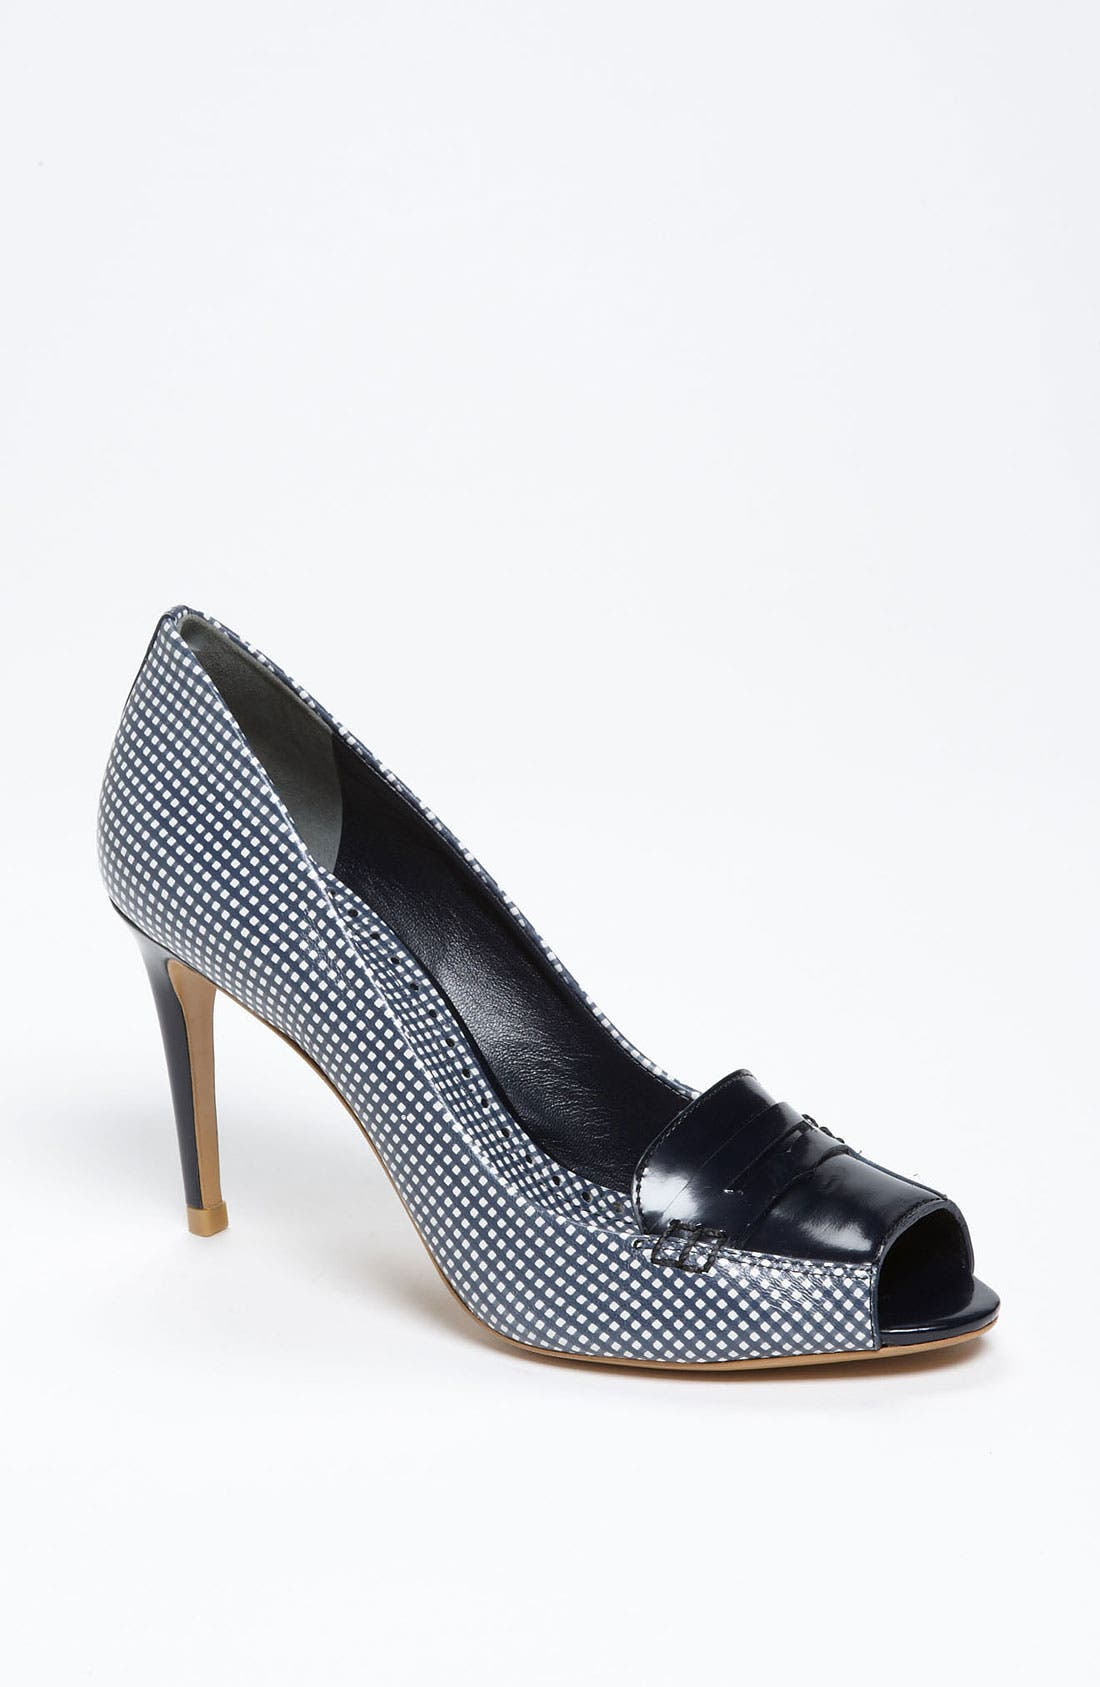 Alternate Image 1 Selected - Tory Burch 'Becky' Pump (Nordstrom Exclusive)